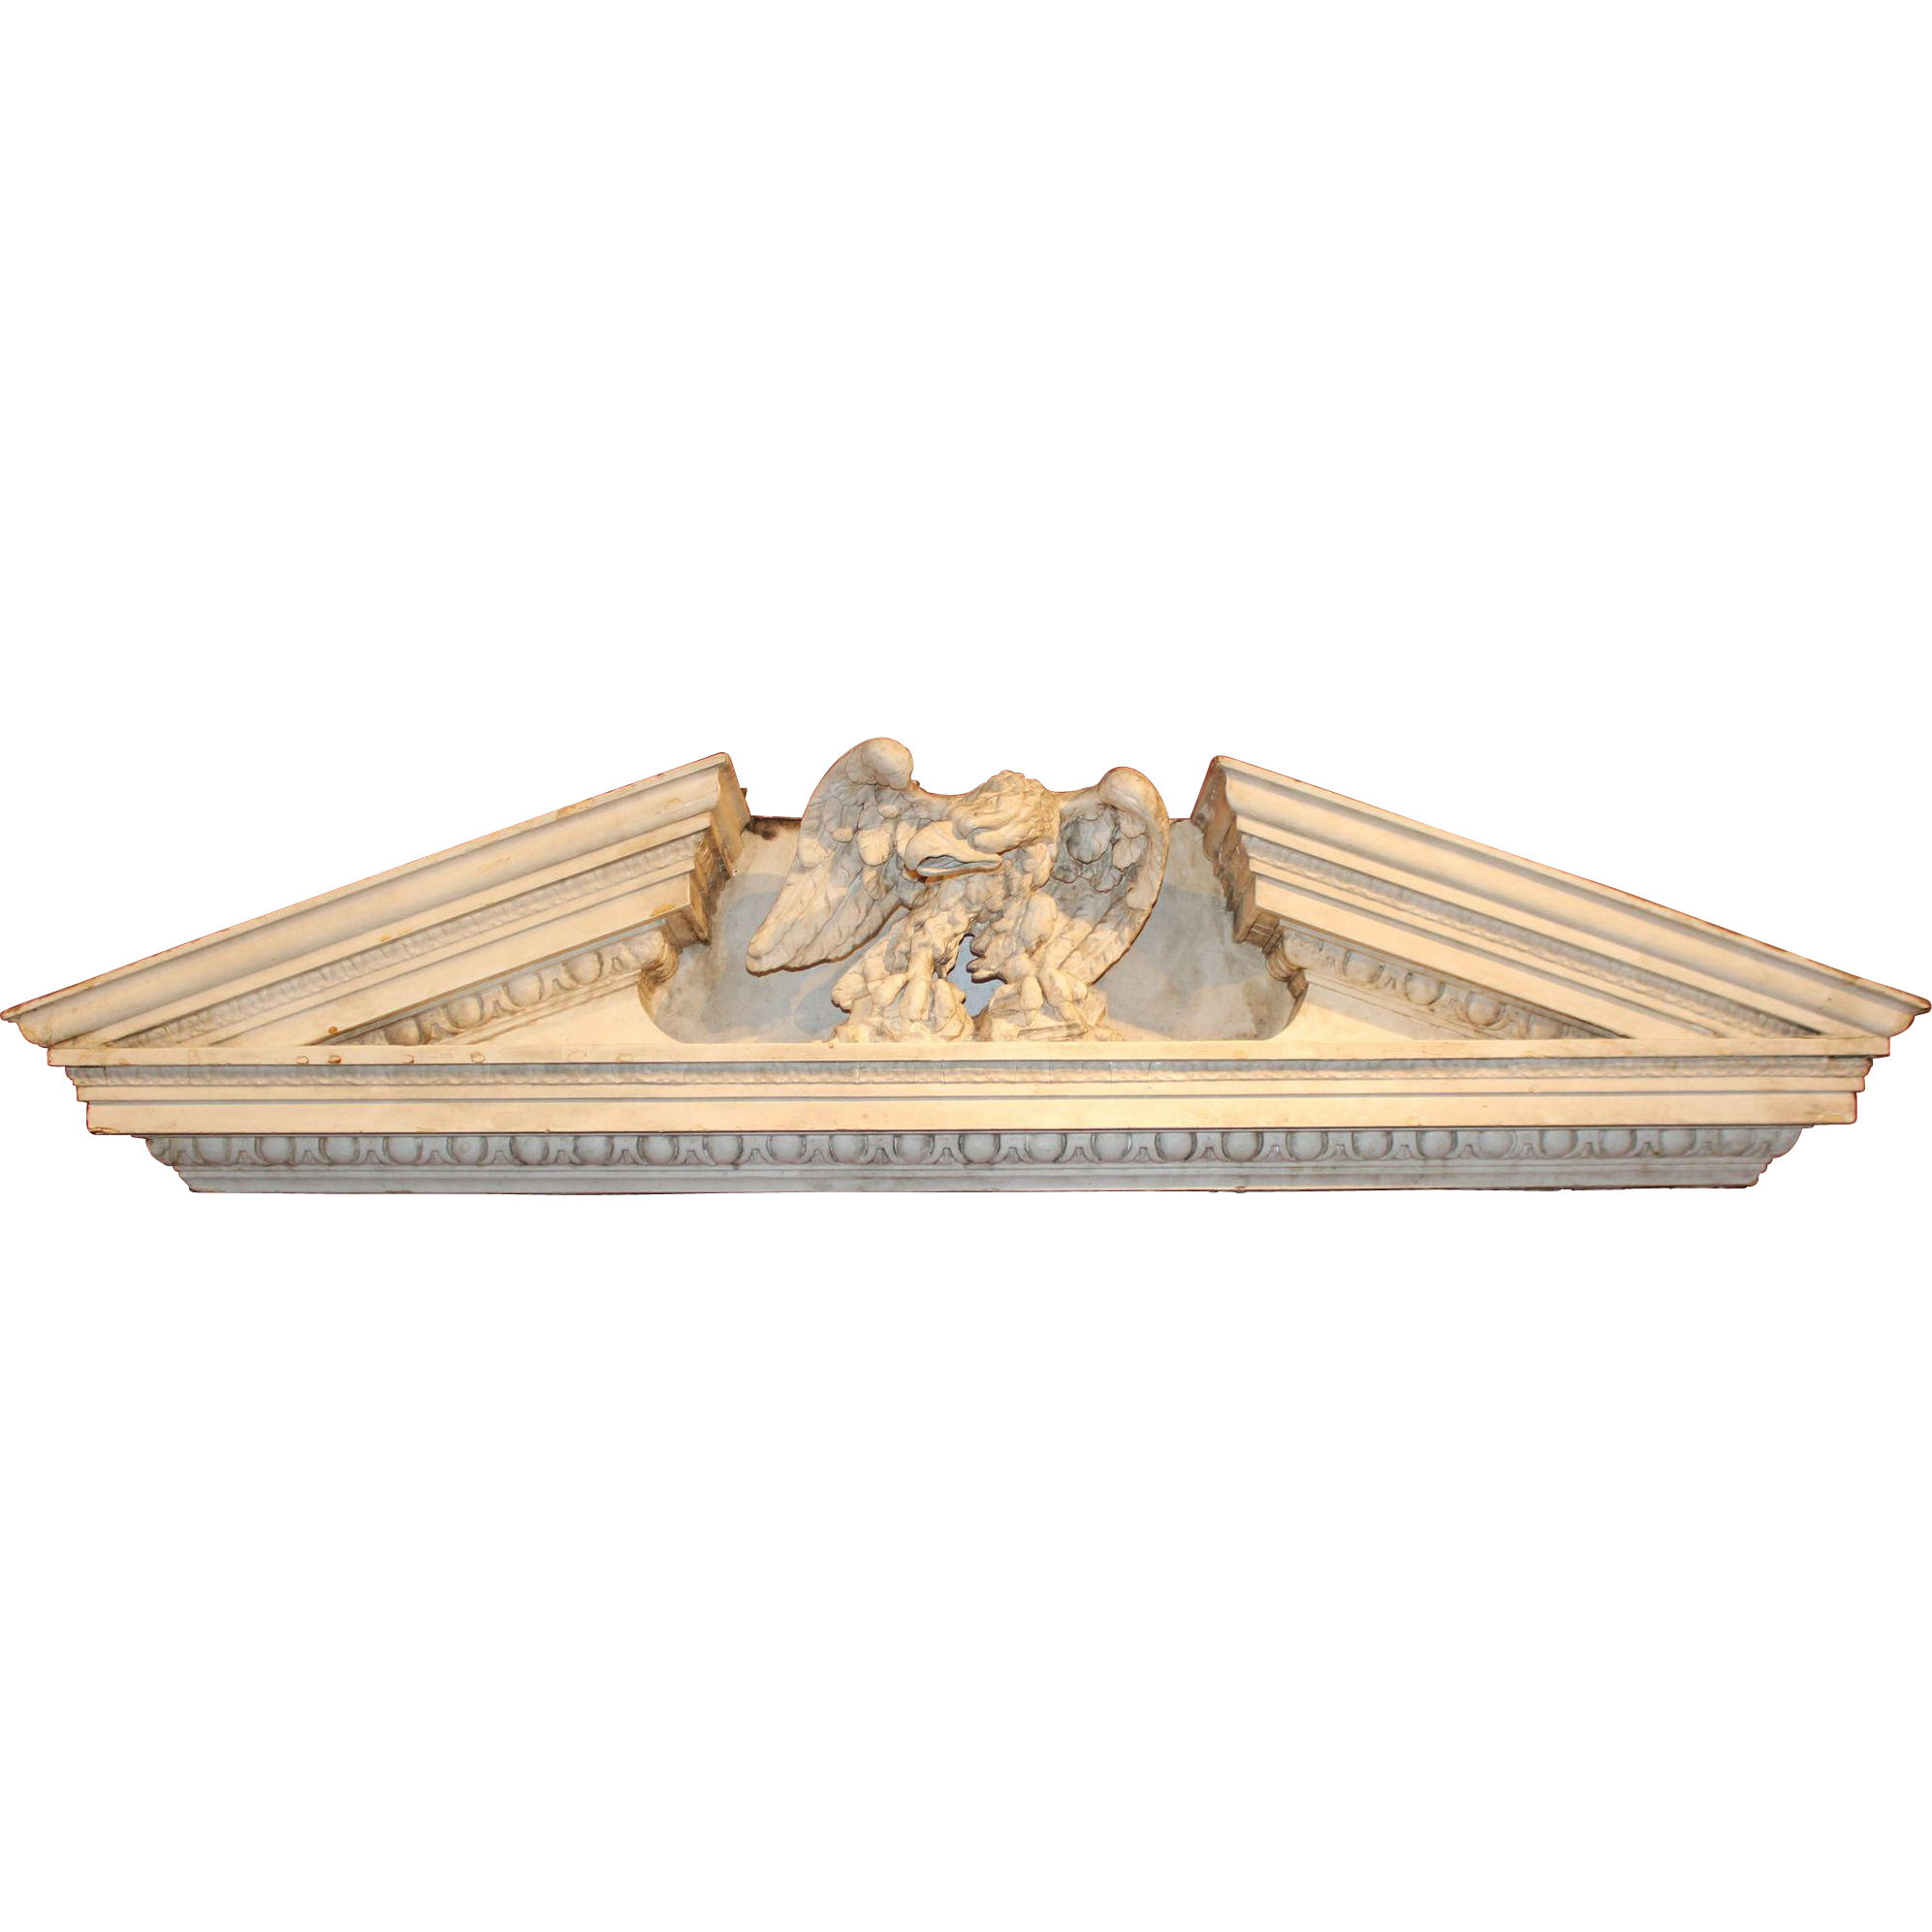 Wood and Gesso Architectural Pediment with Eagle, Newport RI